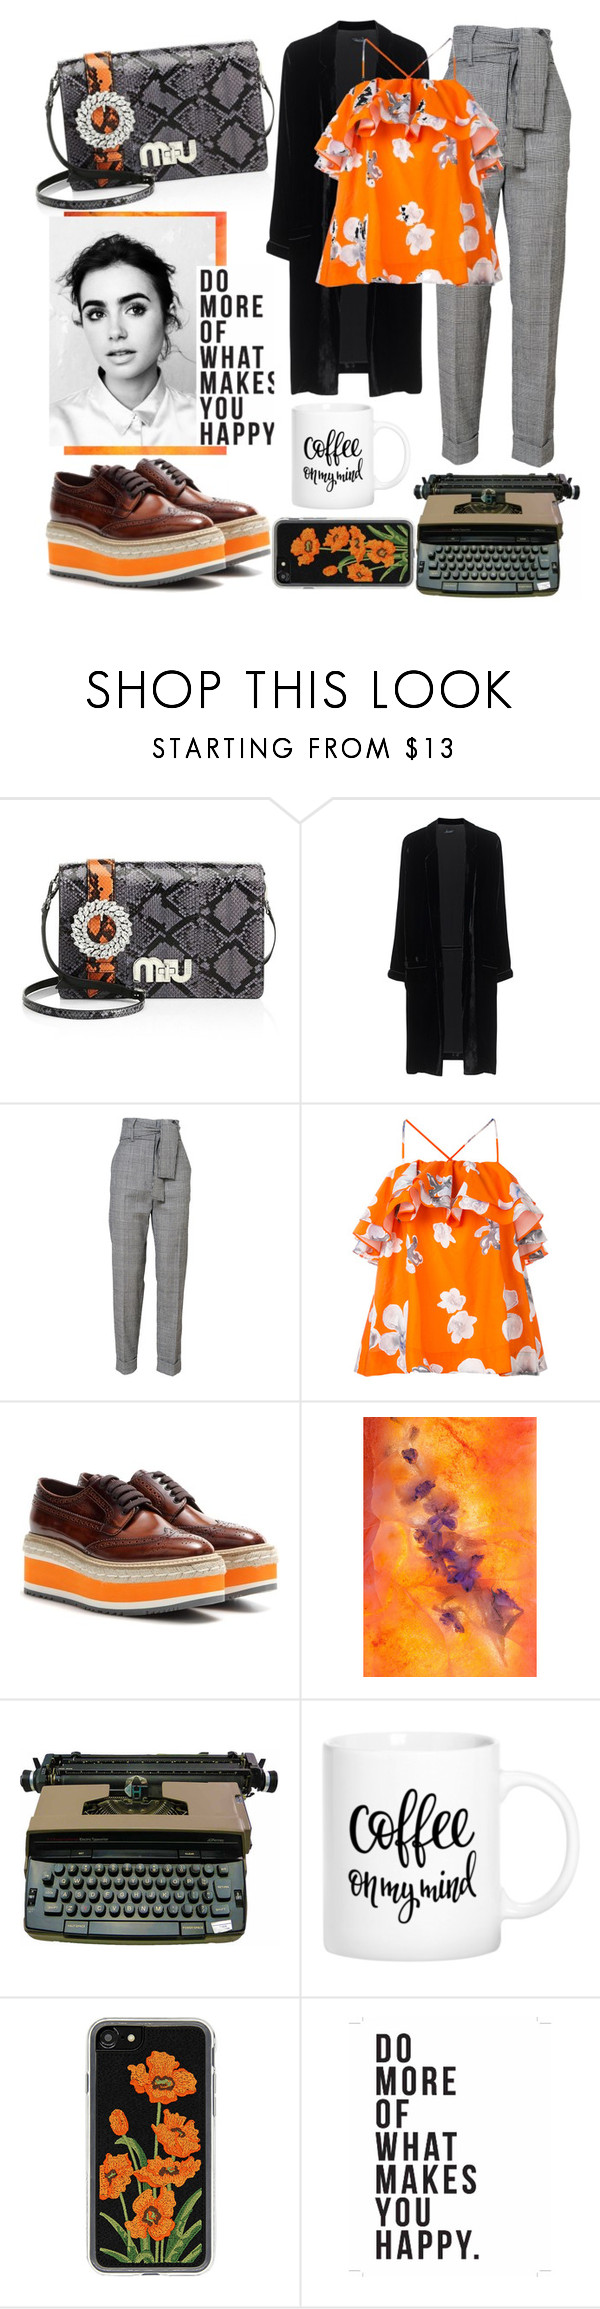 """Do More..."" by eversmile ❤ liked on Polyvore featuring Miu Miu, Jadicted, MSGM, Prada, Primp, Zero Gravity and Native State"